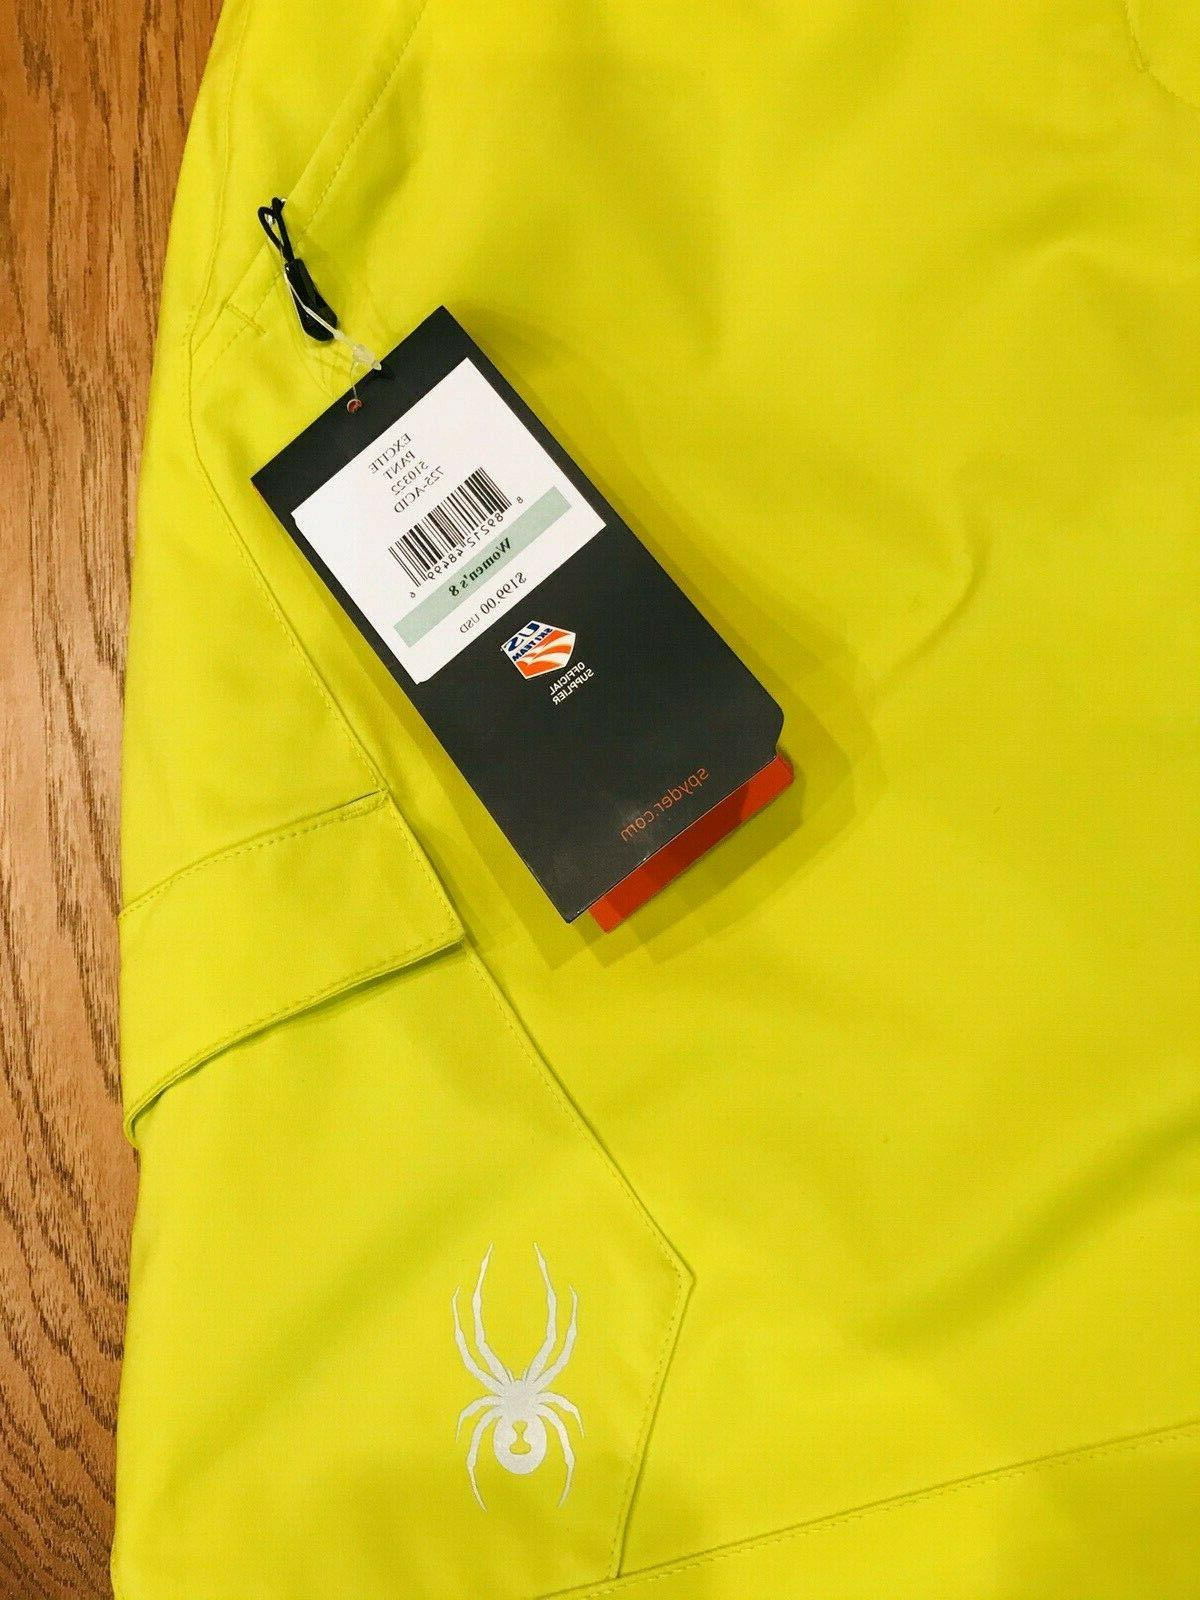 Spyder Excite Snowboard Pants Bright Acid Yellow NEW